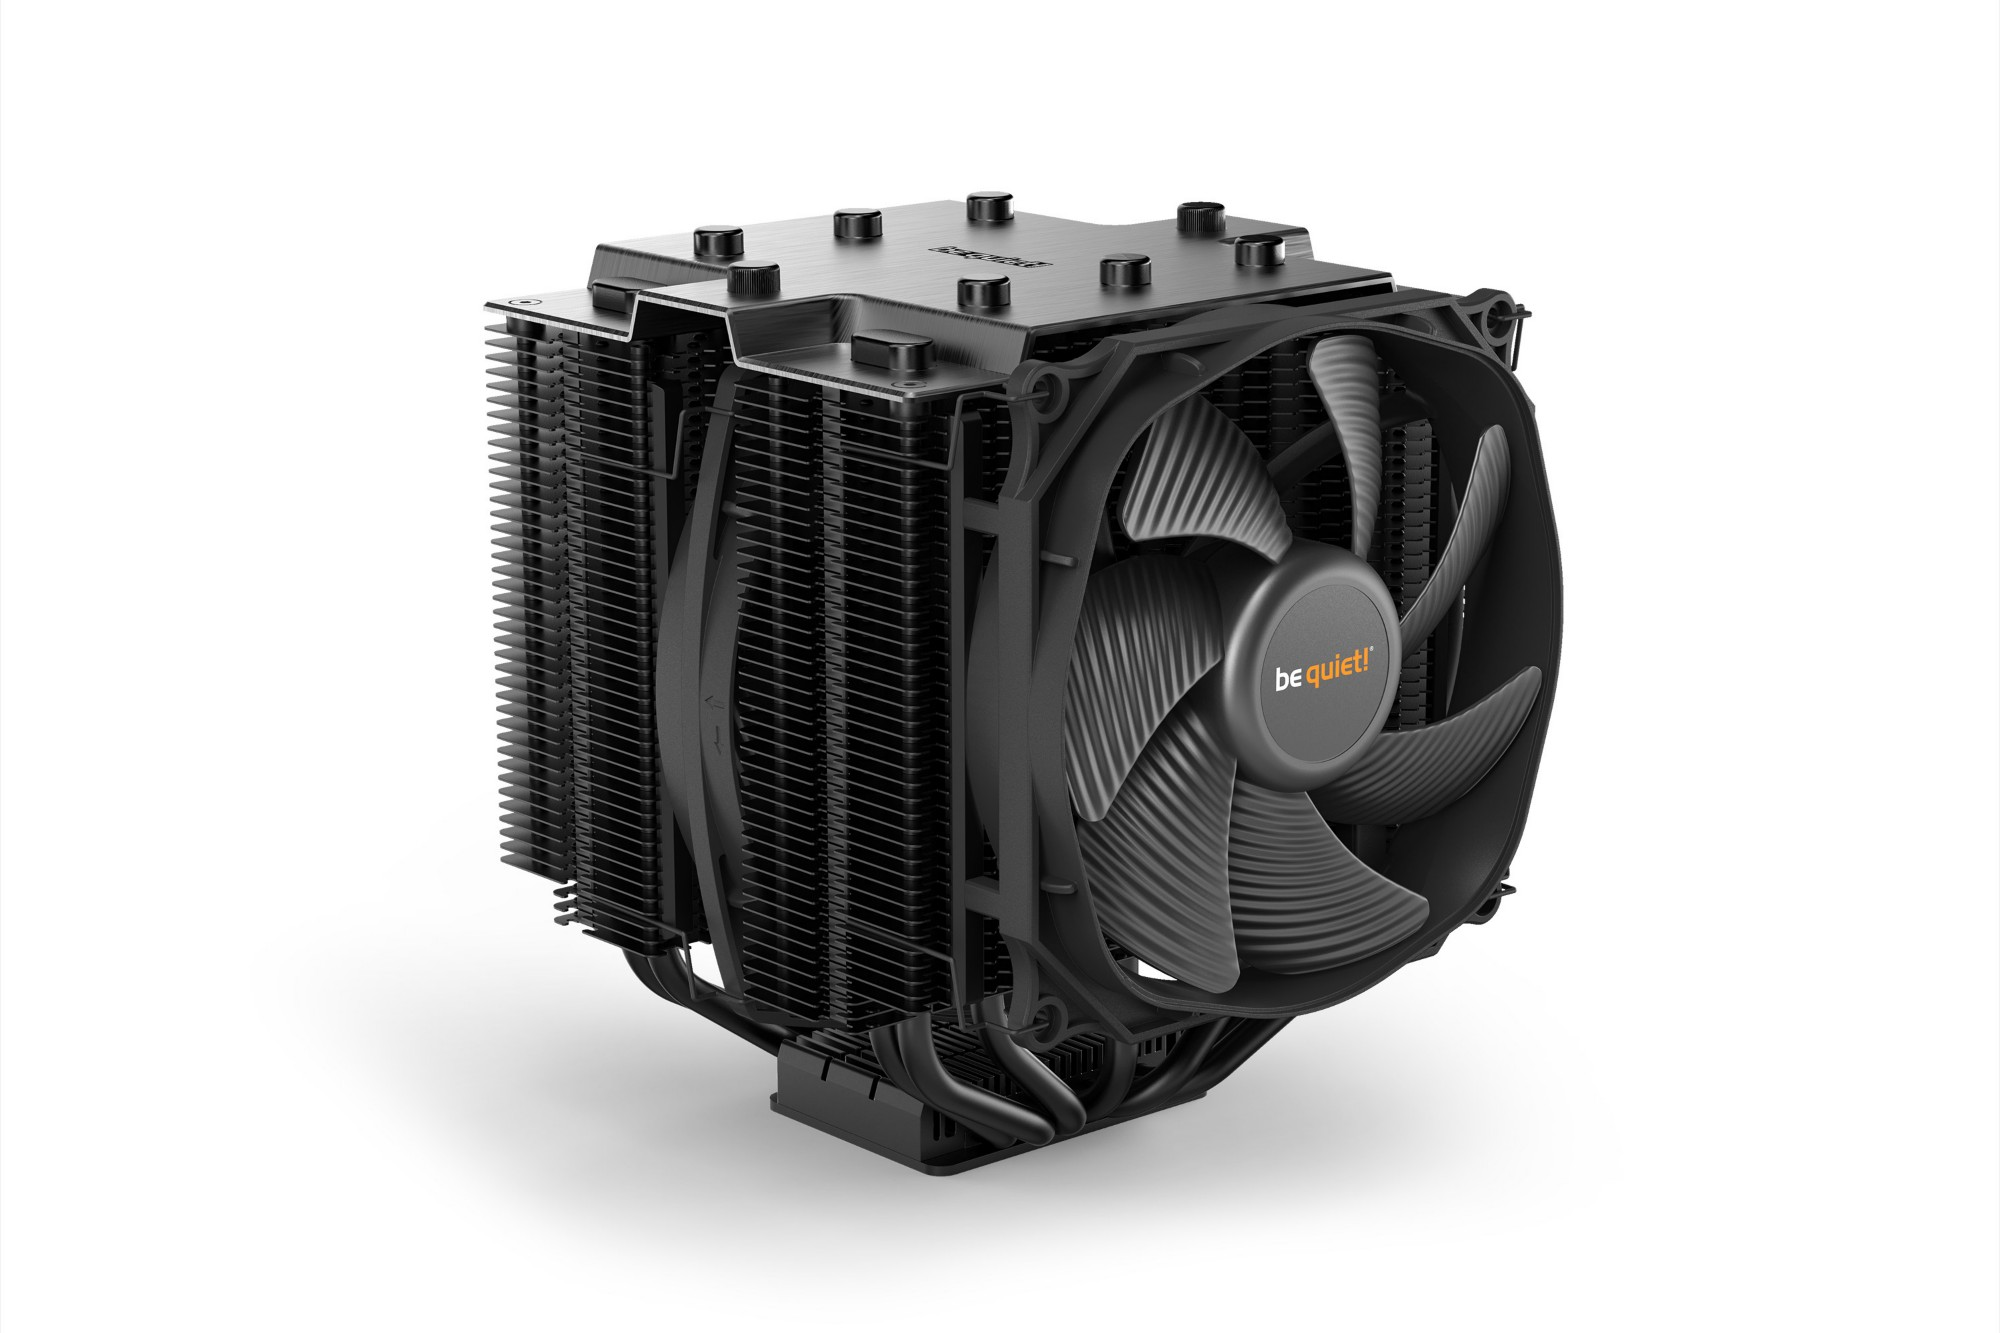 BE QUIET! BK023 DARK ROCK PRO TR4 PROCESSOR COOLER